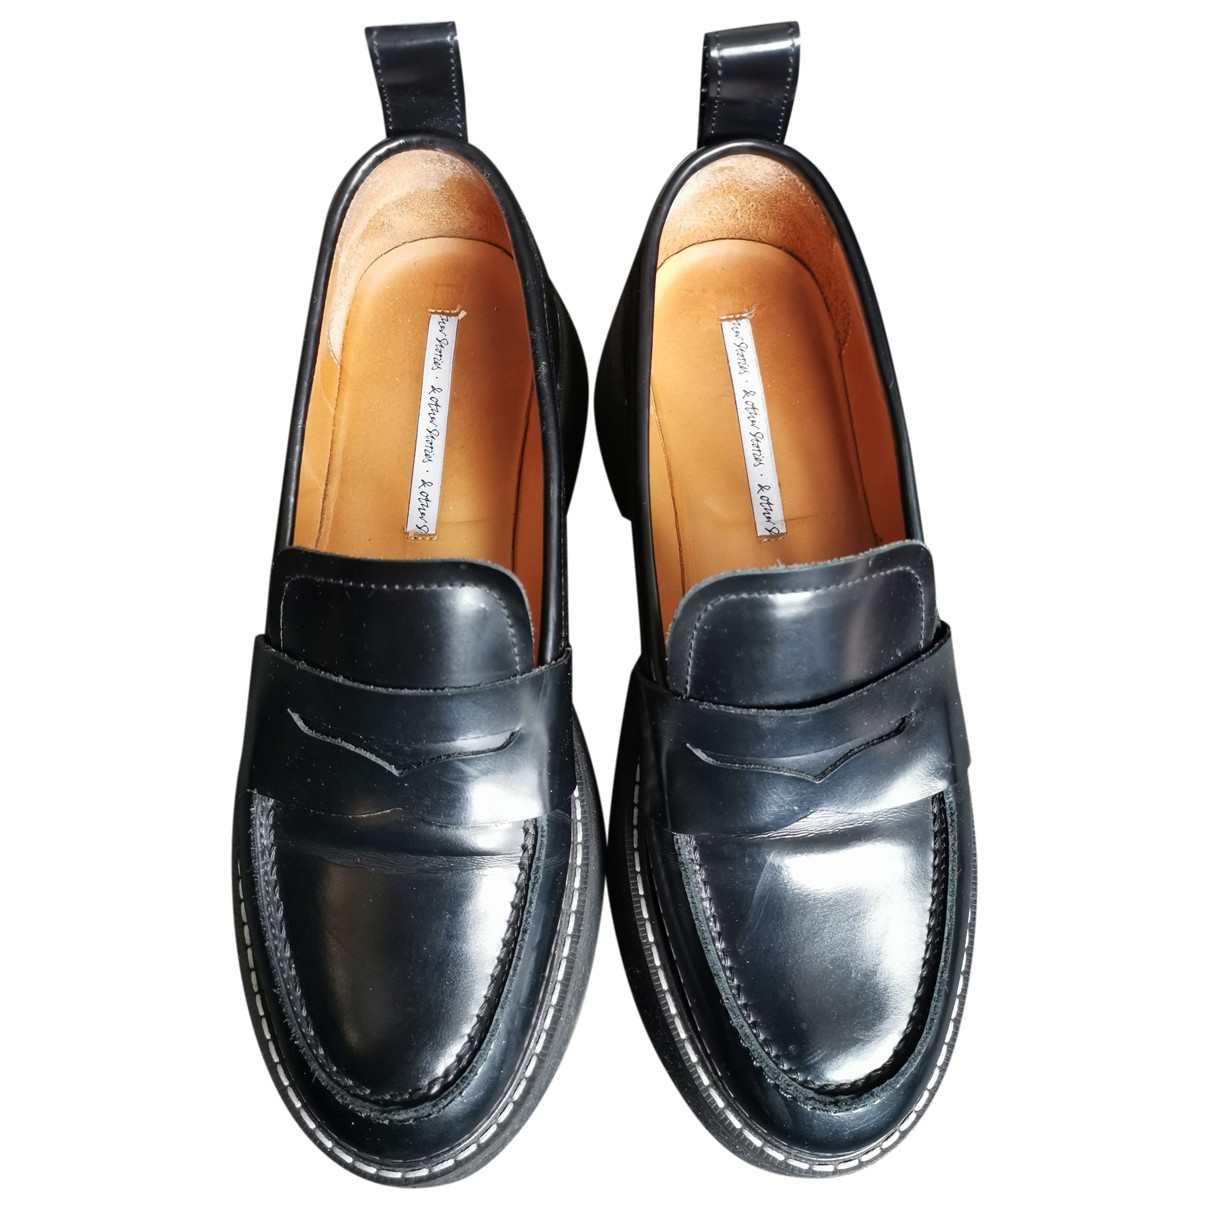 & Stories \N Black Leather Flats for Women 39 EU